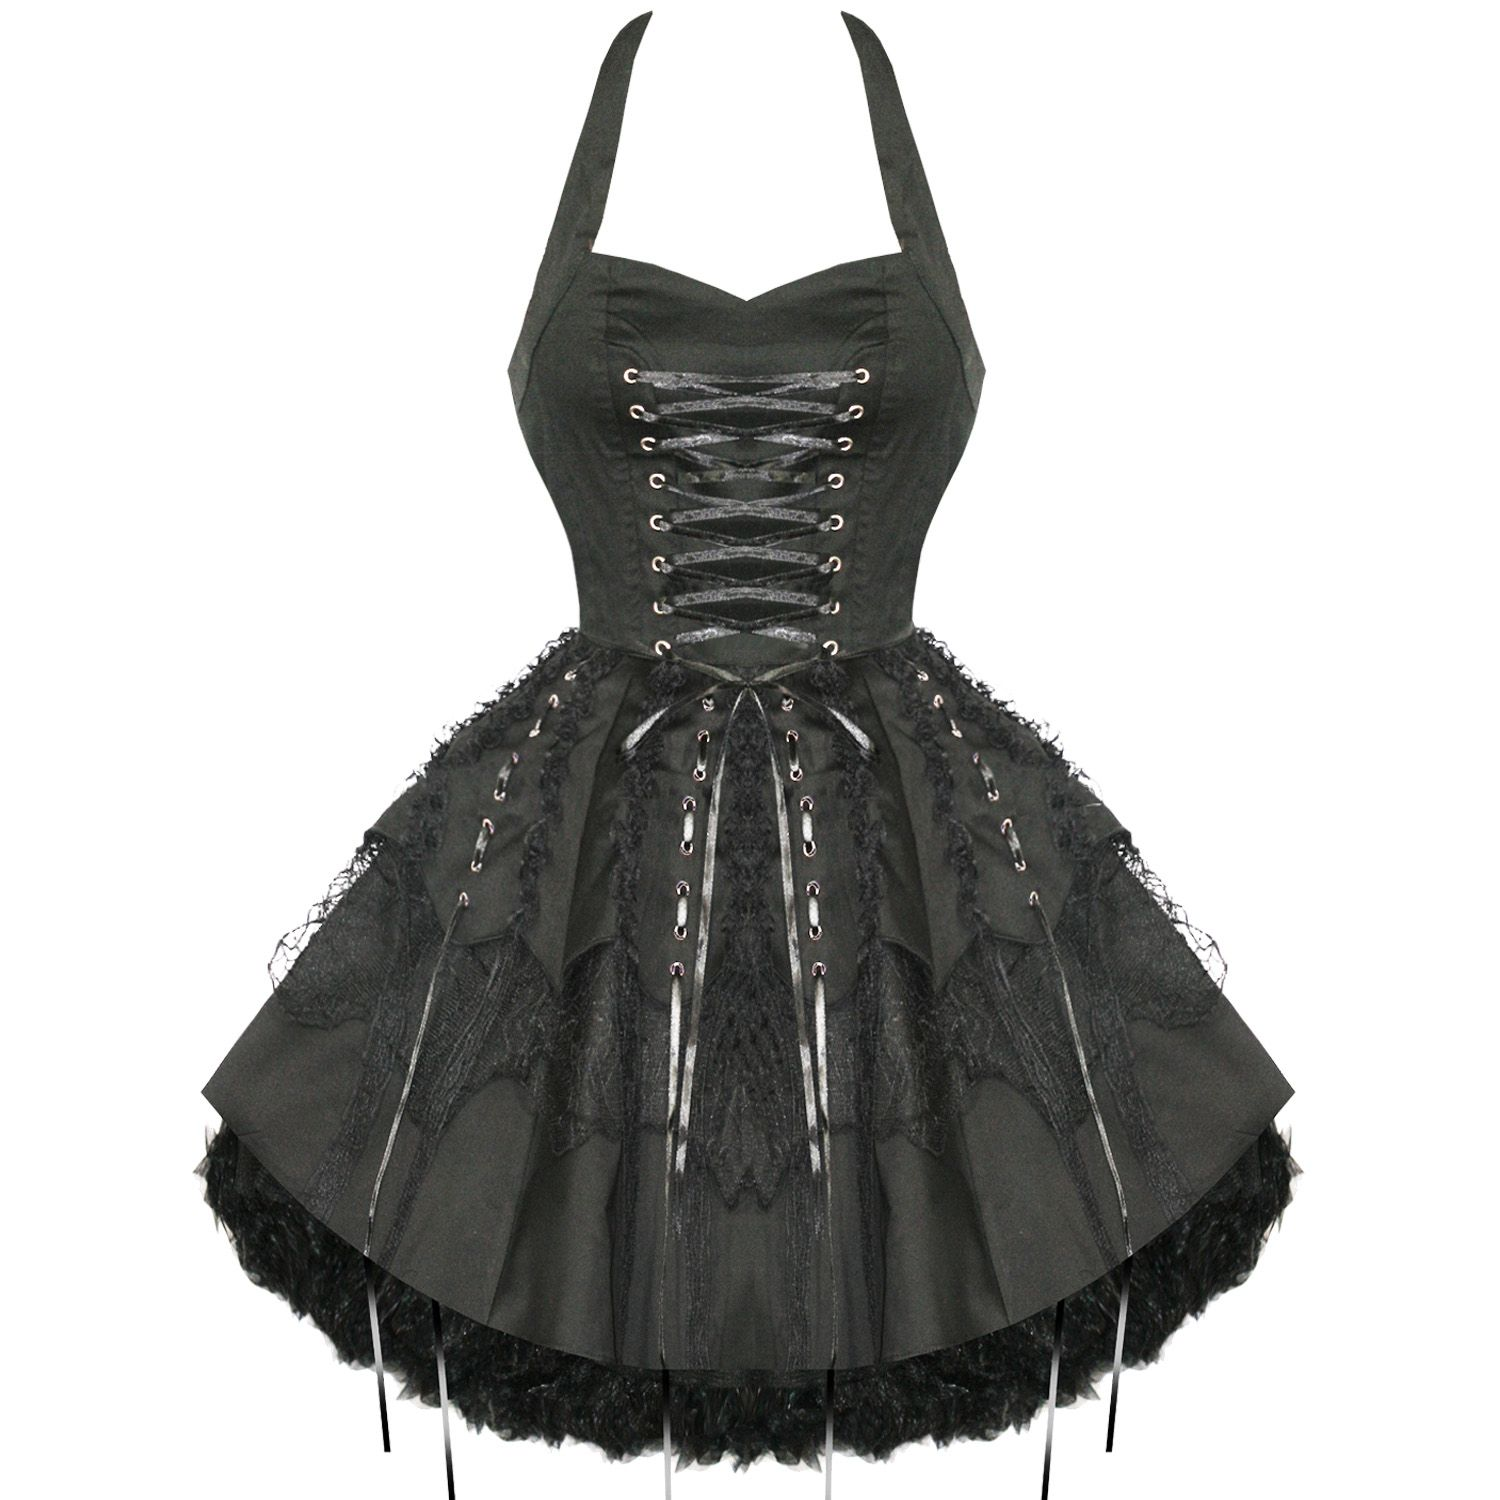 HEARTS & ROSES LONDON BLACK LACE GOTHIC STEAMPUNK EMO PARTY PROM ...